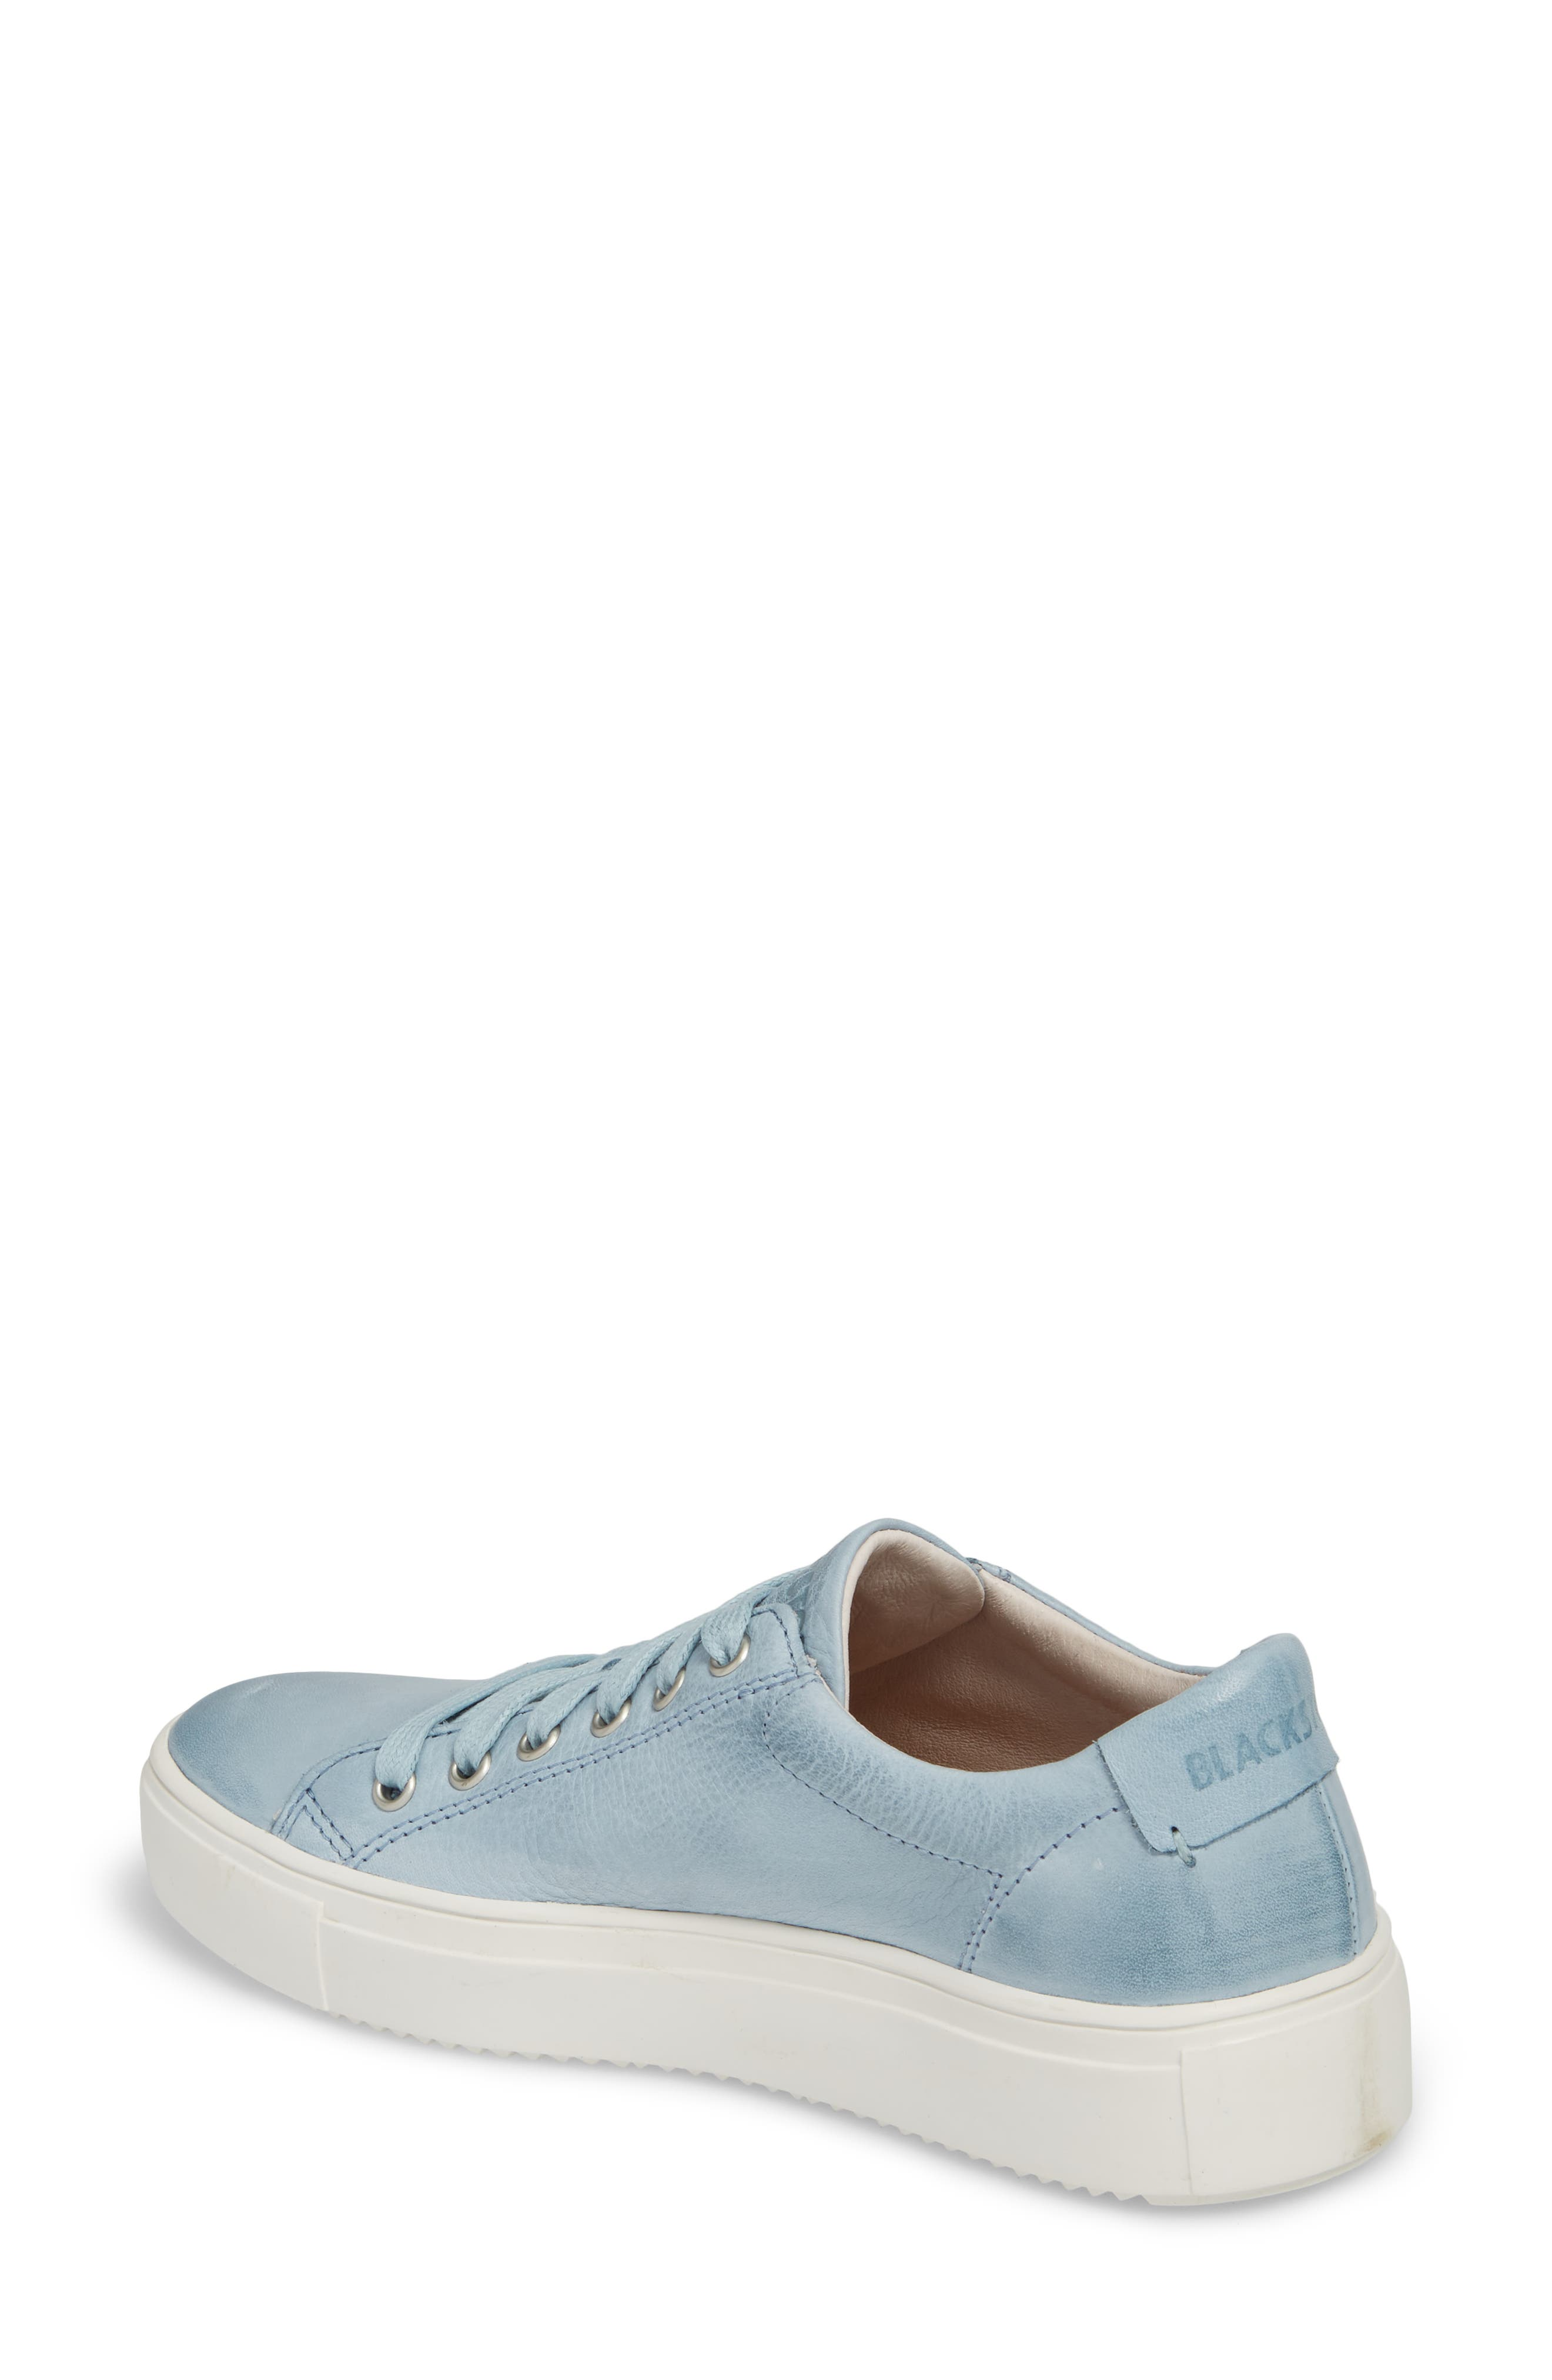 PL71 Low Top Sneaker,                             Alternate thumbnail 2, color,                             Sky Blue Leather